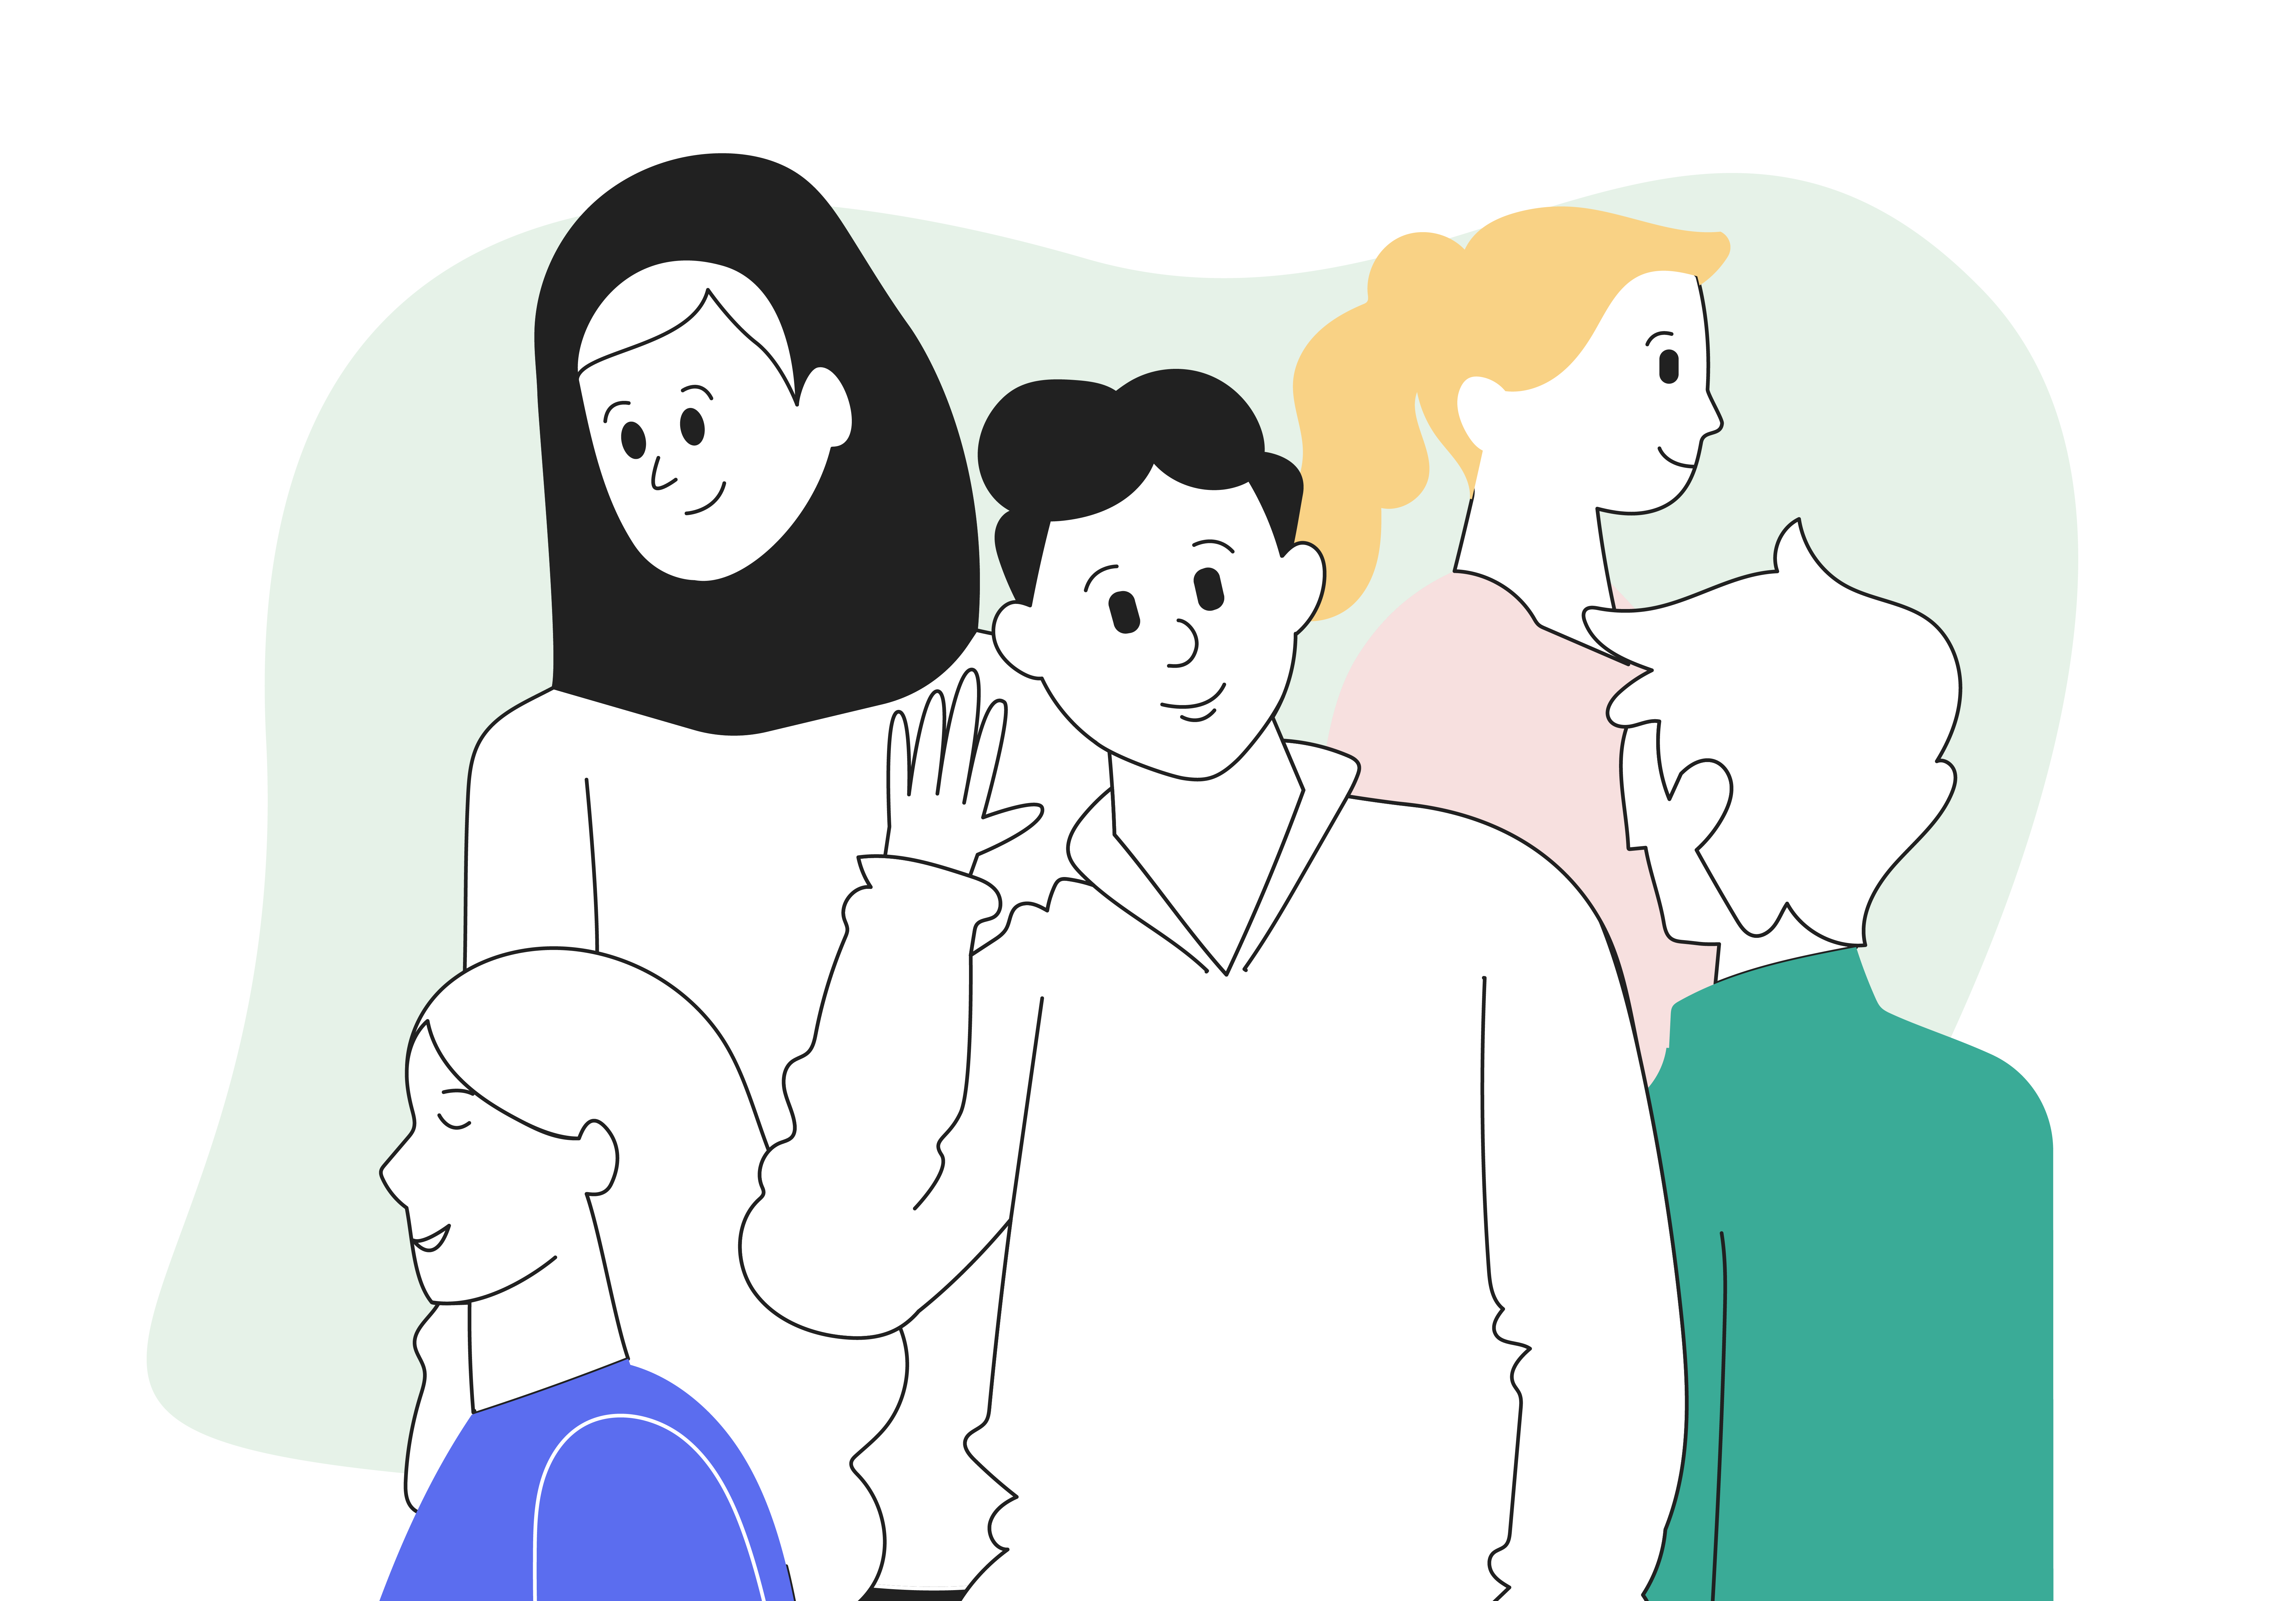 Strategy foundations: how to create an ideal client profile and personas for targeted marketing - image shows group of people looking in different directions